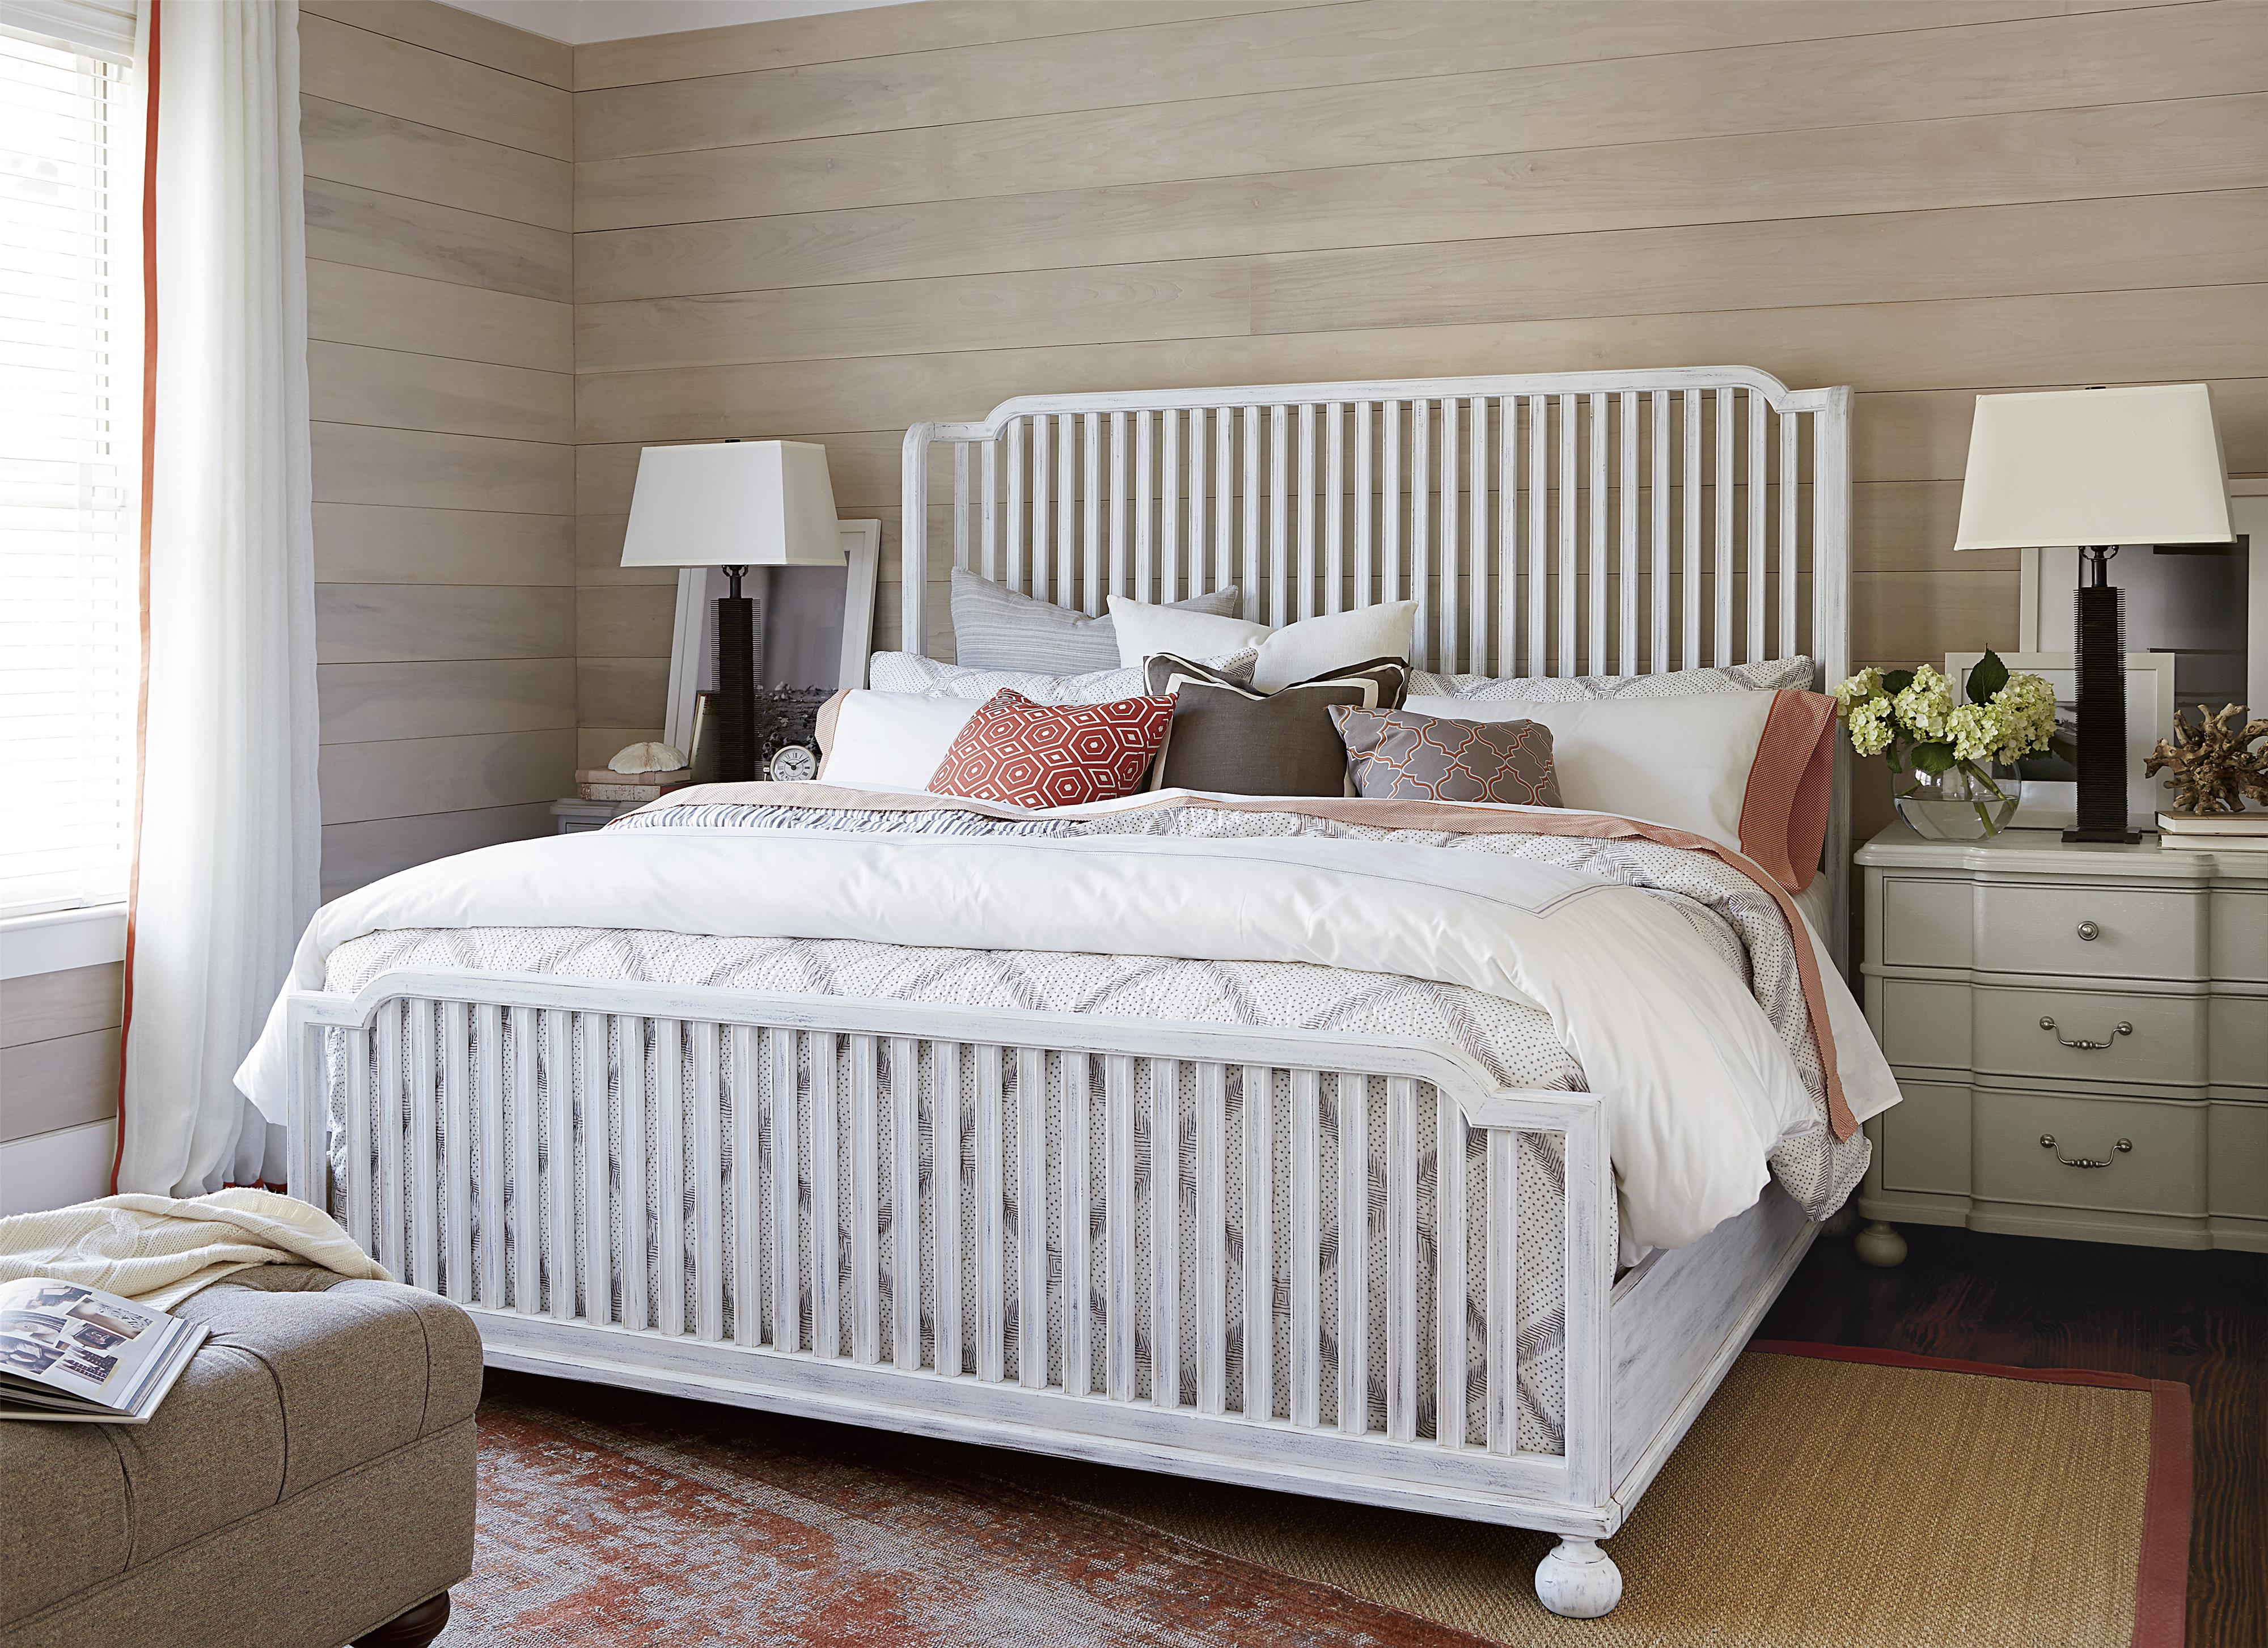 Paula Deen by Universal Dogwood Queen Bedroom Group - Item Number: 597 Q Bedroom Group 4